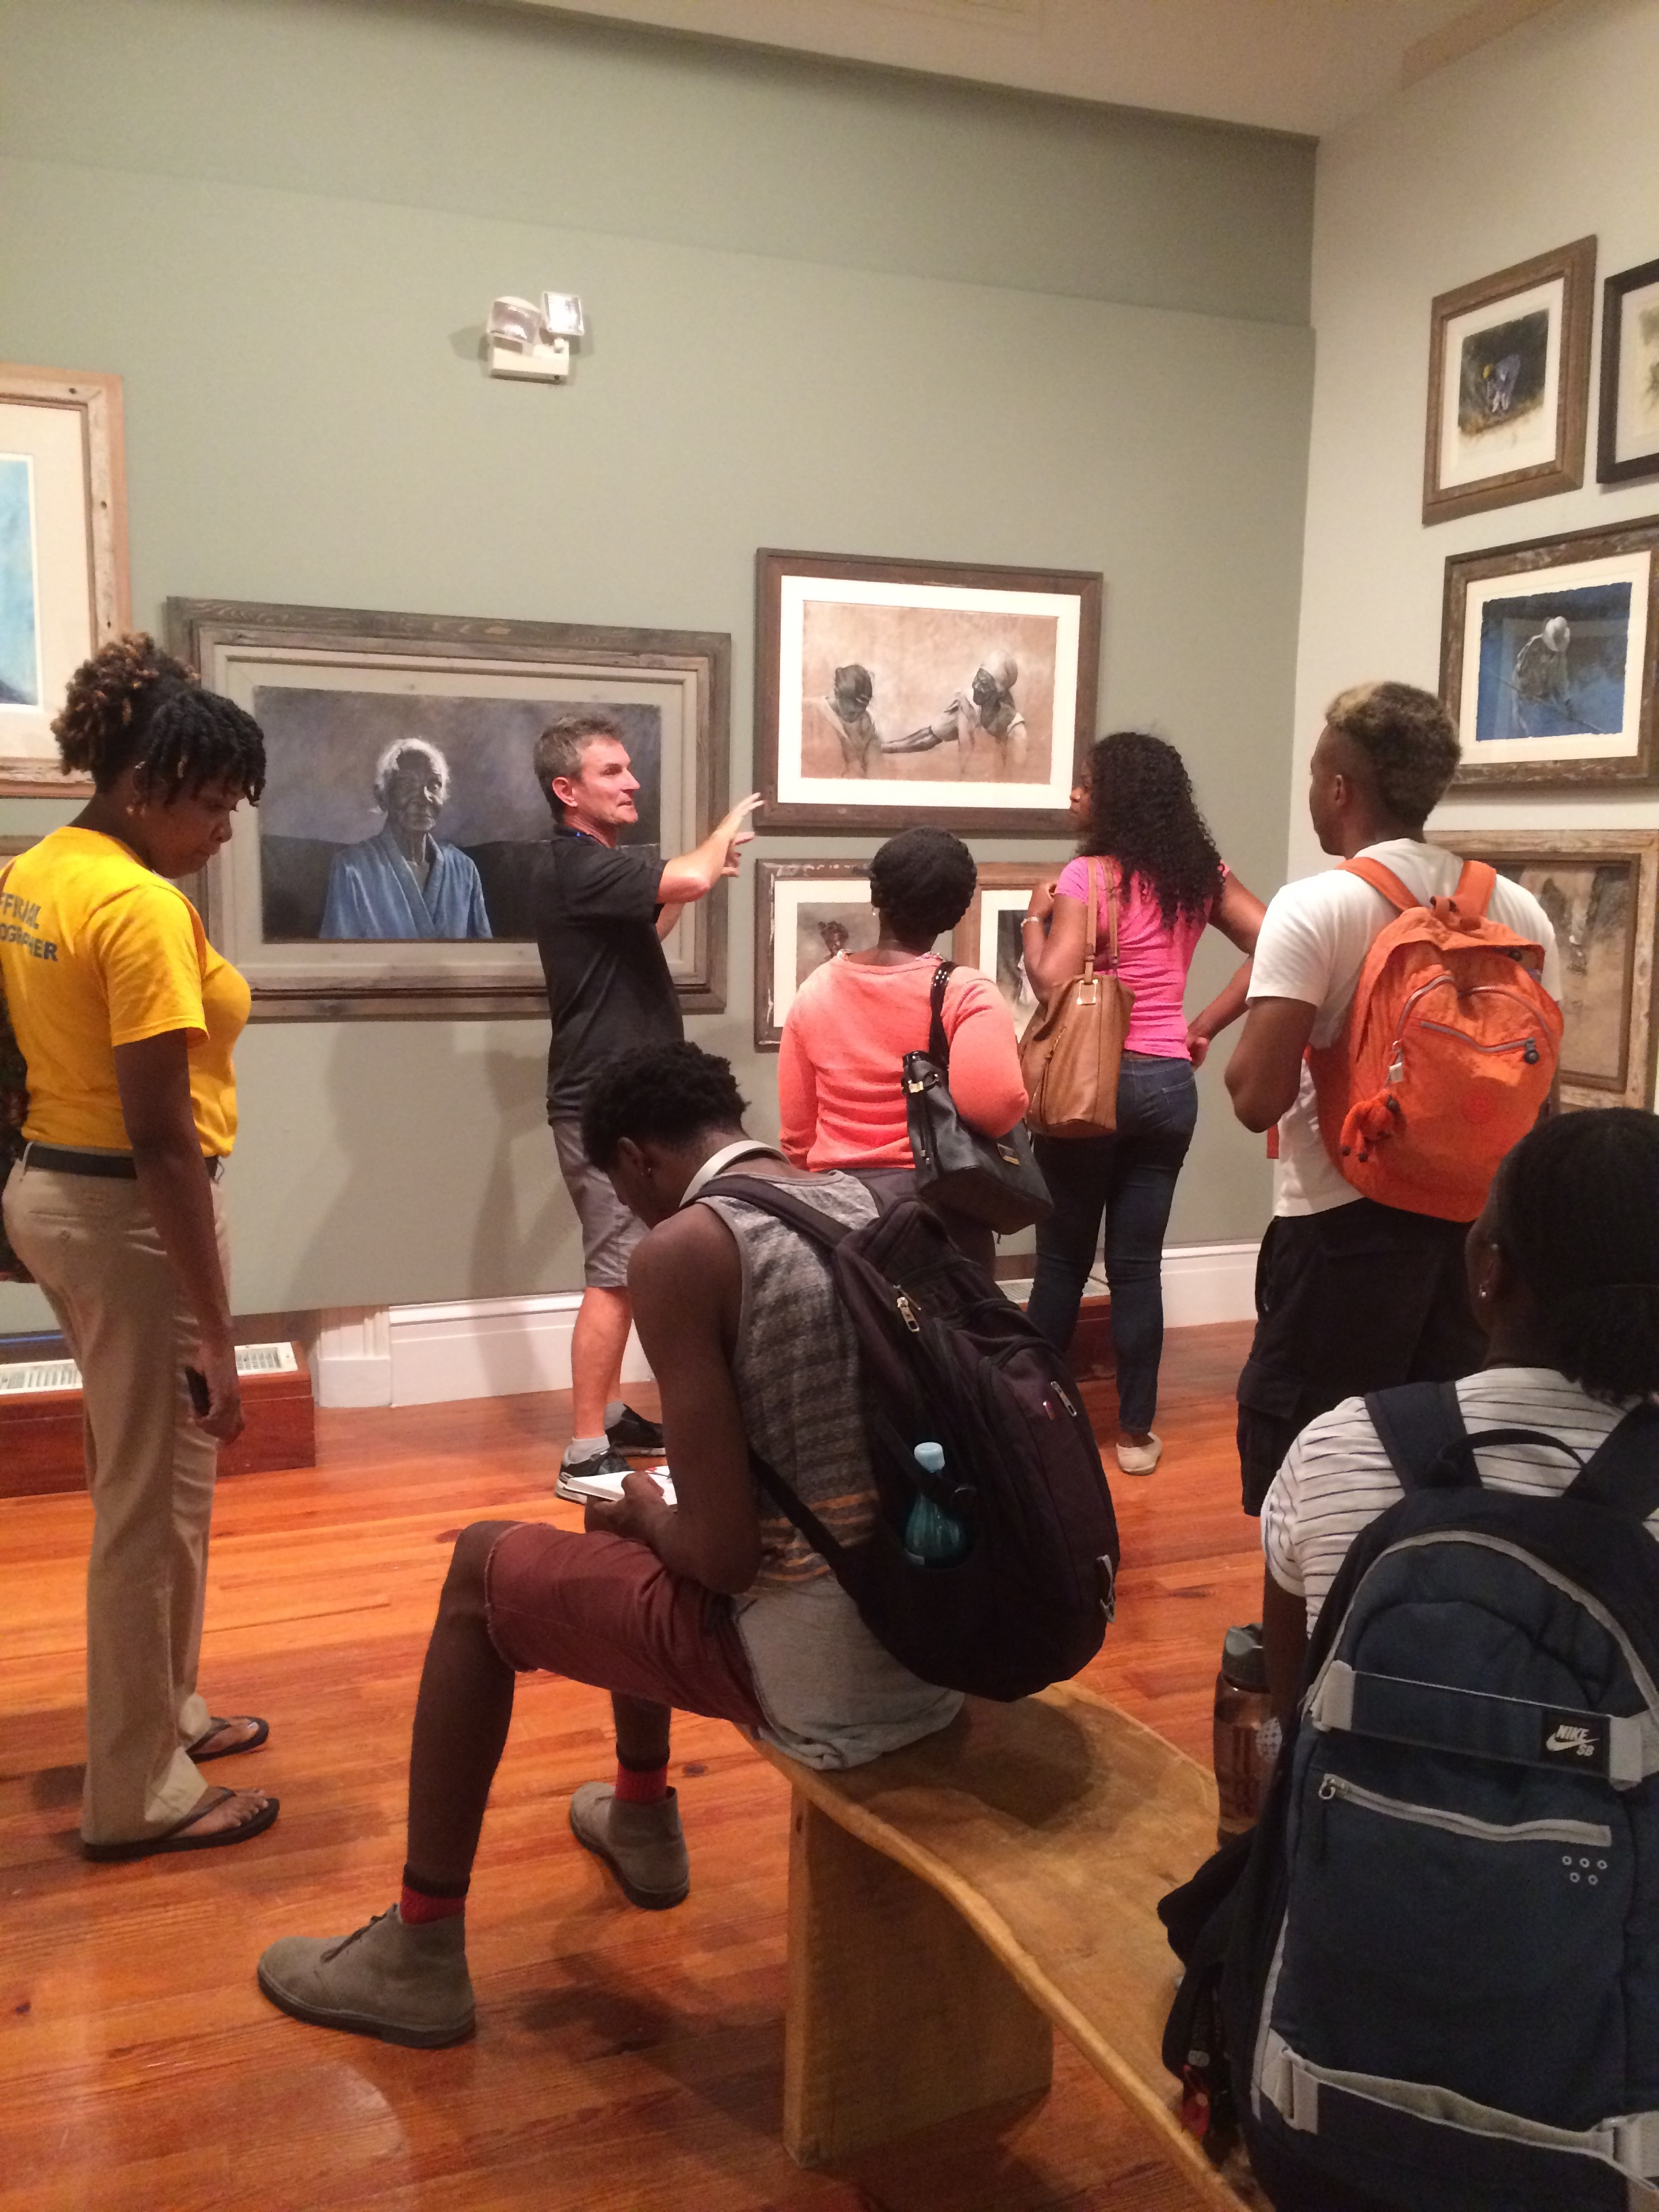 """University of The Bahamas students visit Thierry Lamare's """"Love, Loss and Life"""" on view at the National Art Gallery of The Bahamas and receive a guided tour by the artist. Images courtesy of Dr. Ian Bethell-Bennett."""